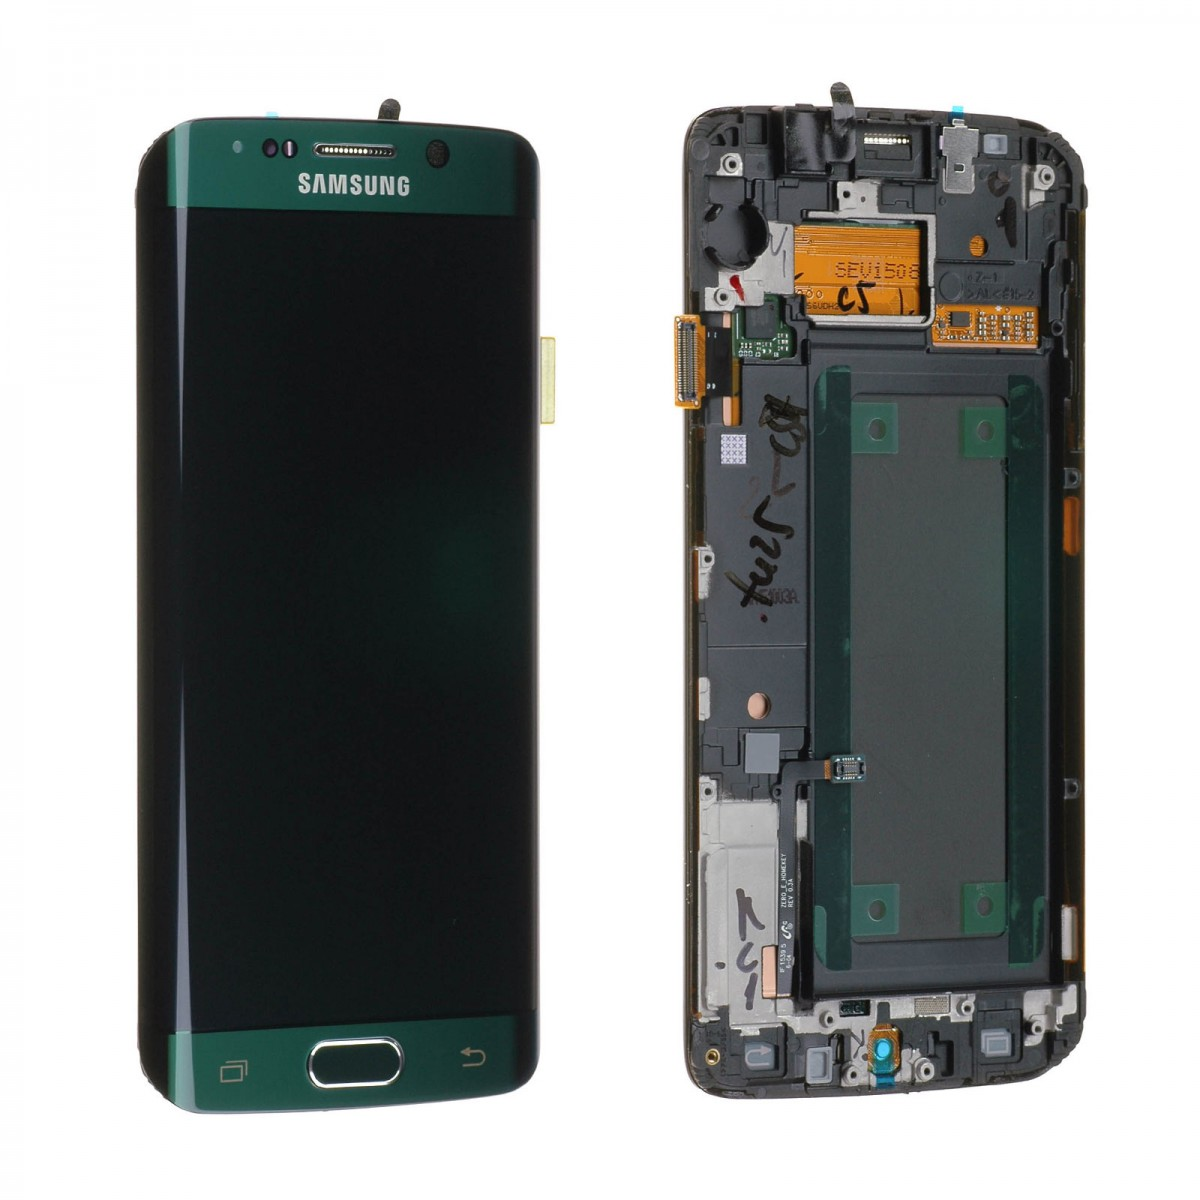 Cran complet samsung galaxy s6 edge g925f vert meraude for Samsung s6 photo ecran